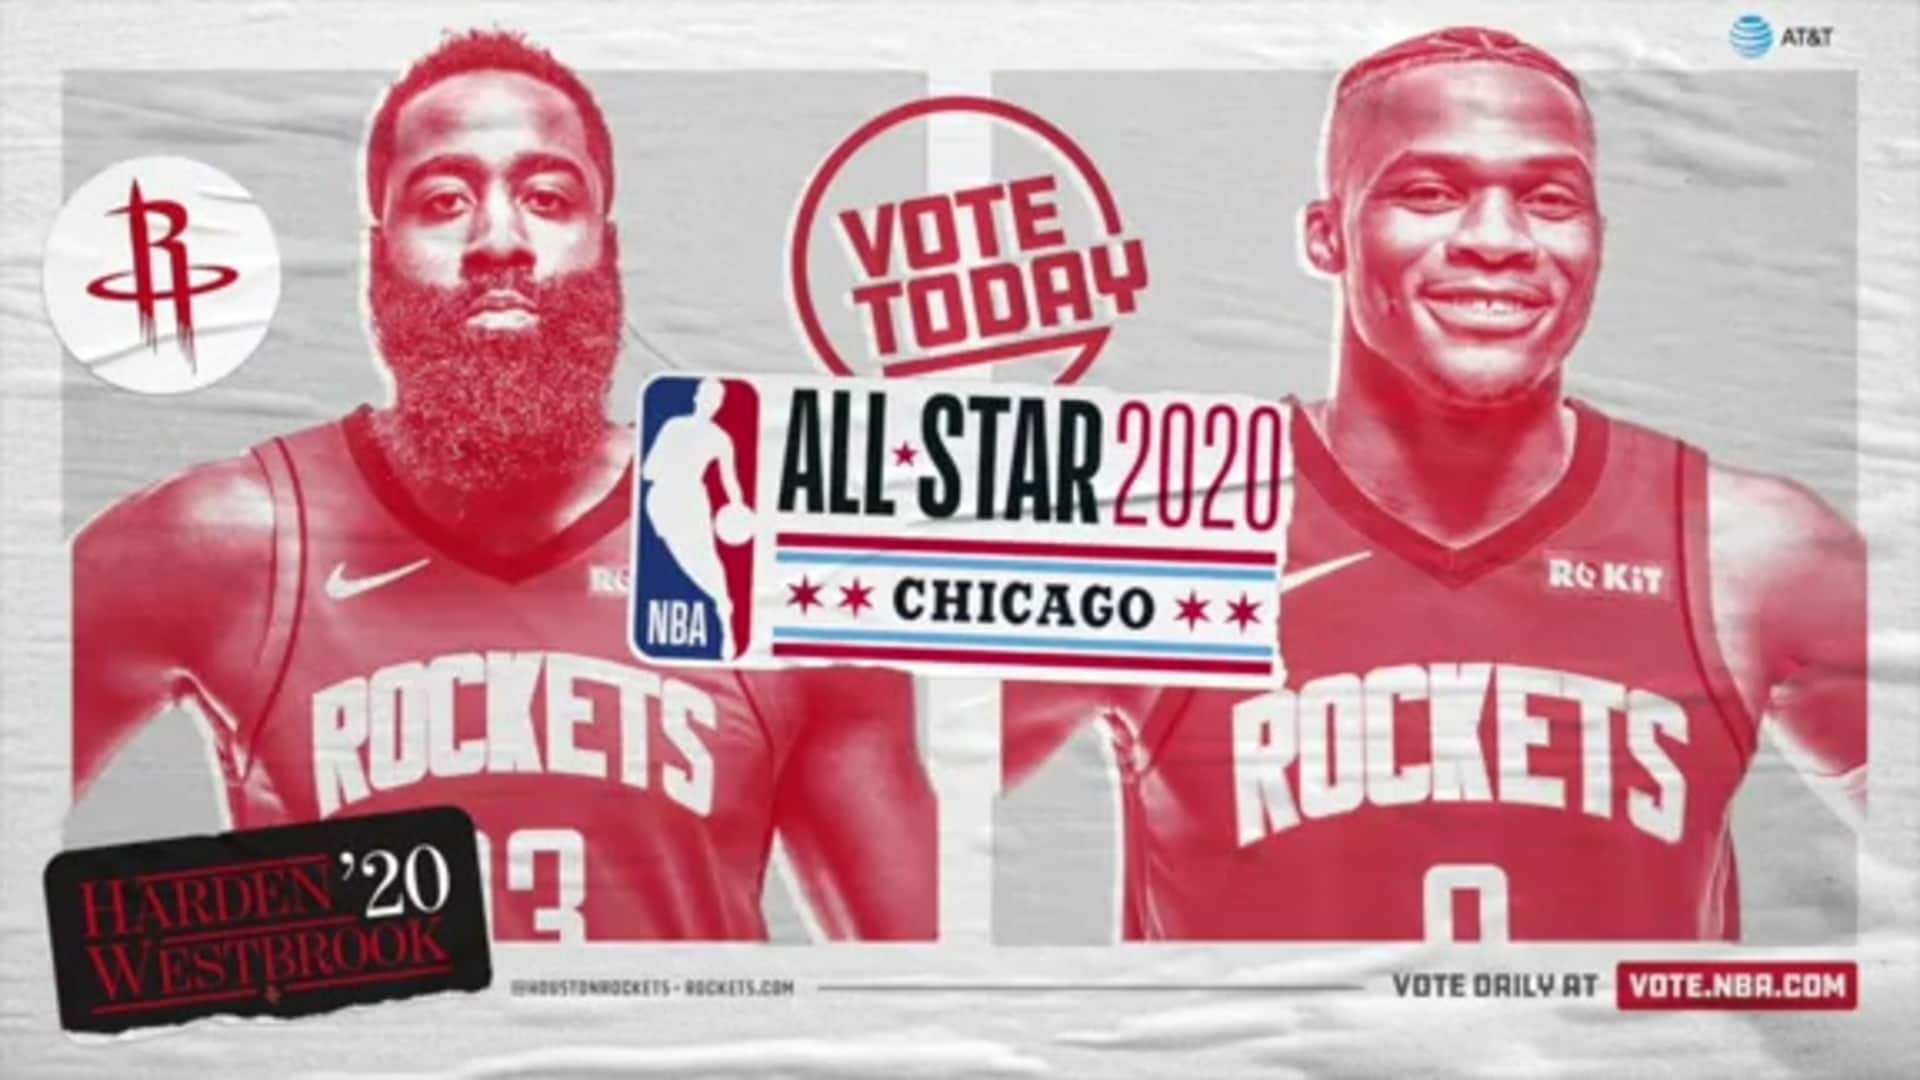 Vote Rockets for All